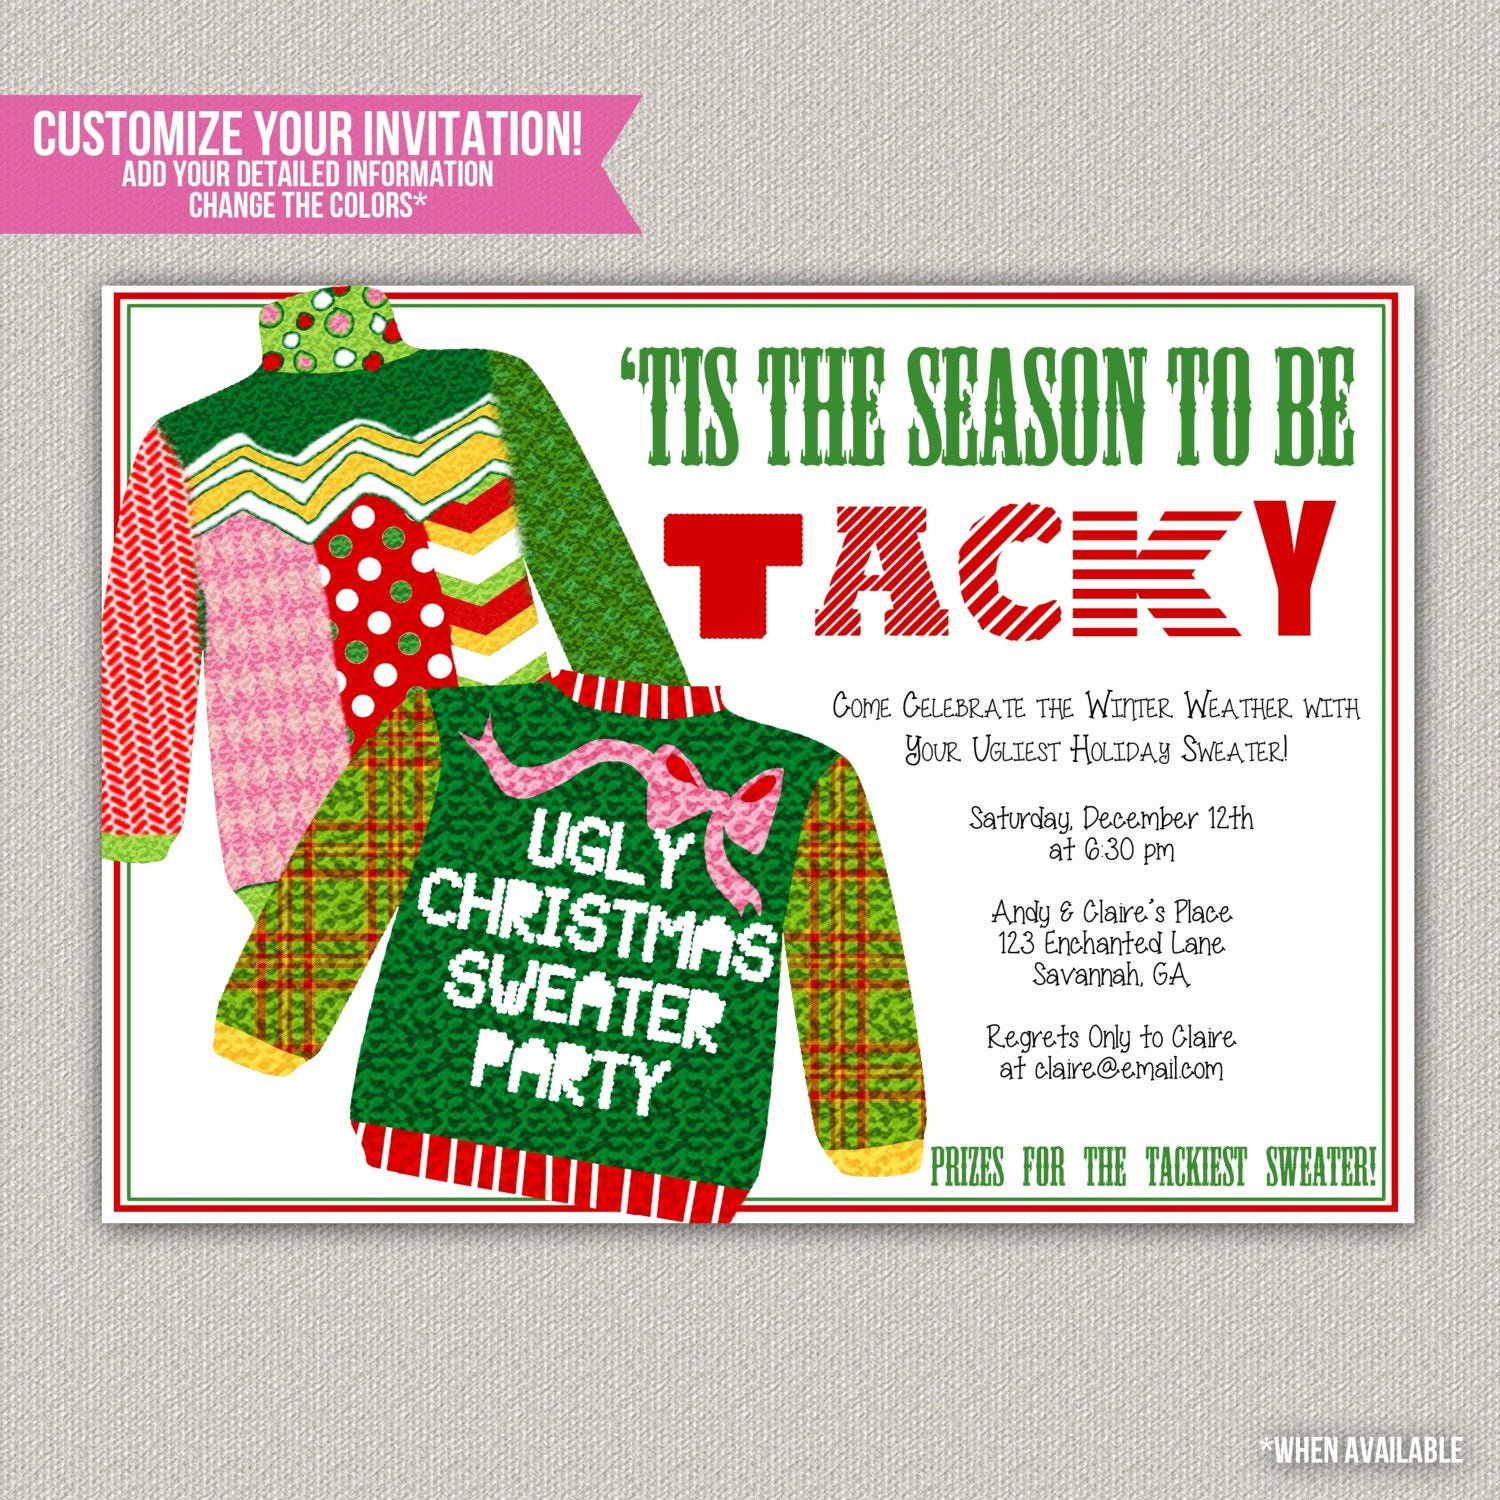 Tacky Christmas Sweater Party Invitation Wording Lovely Tis the Season to Be Tacky Tacky Sweater by Enchanteddesigns4u